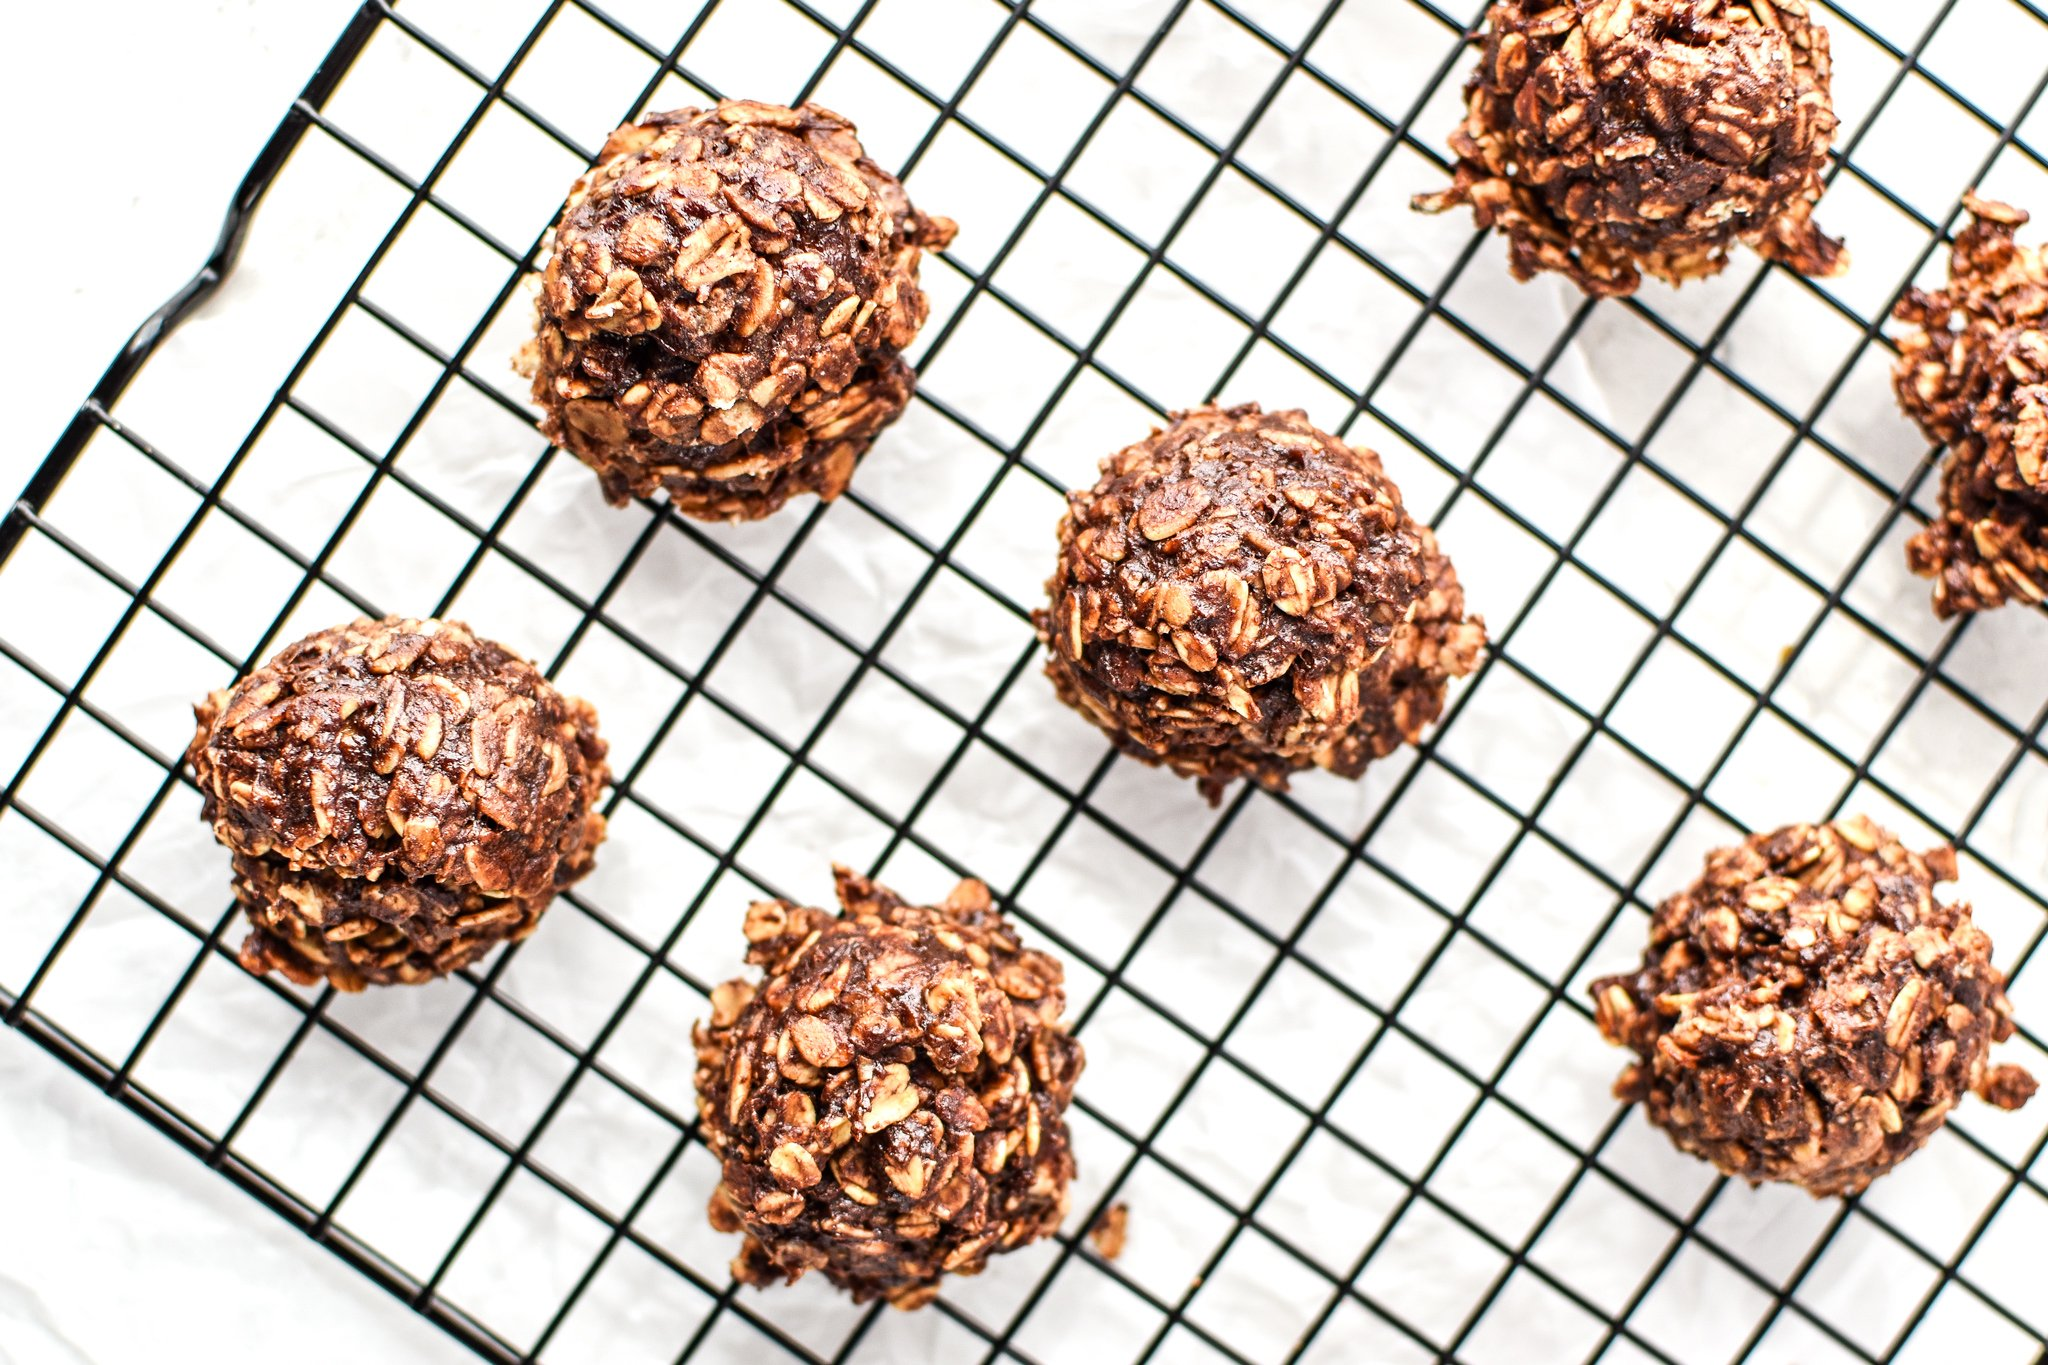 Banana Chocolate Oatmeal Cookie Mounds just baked and cooling on a cooling rack.